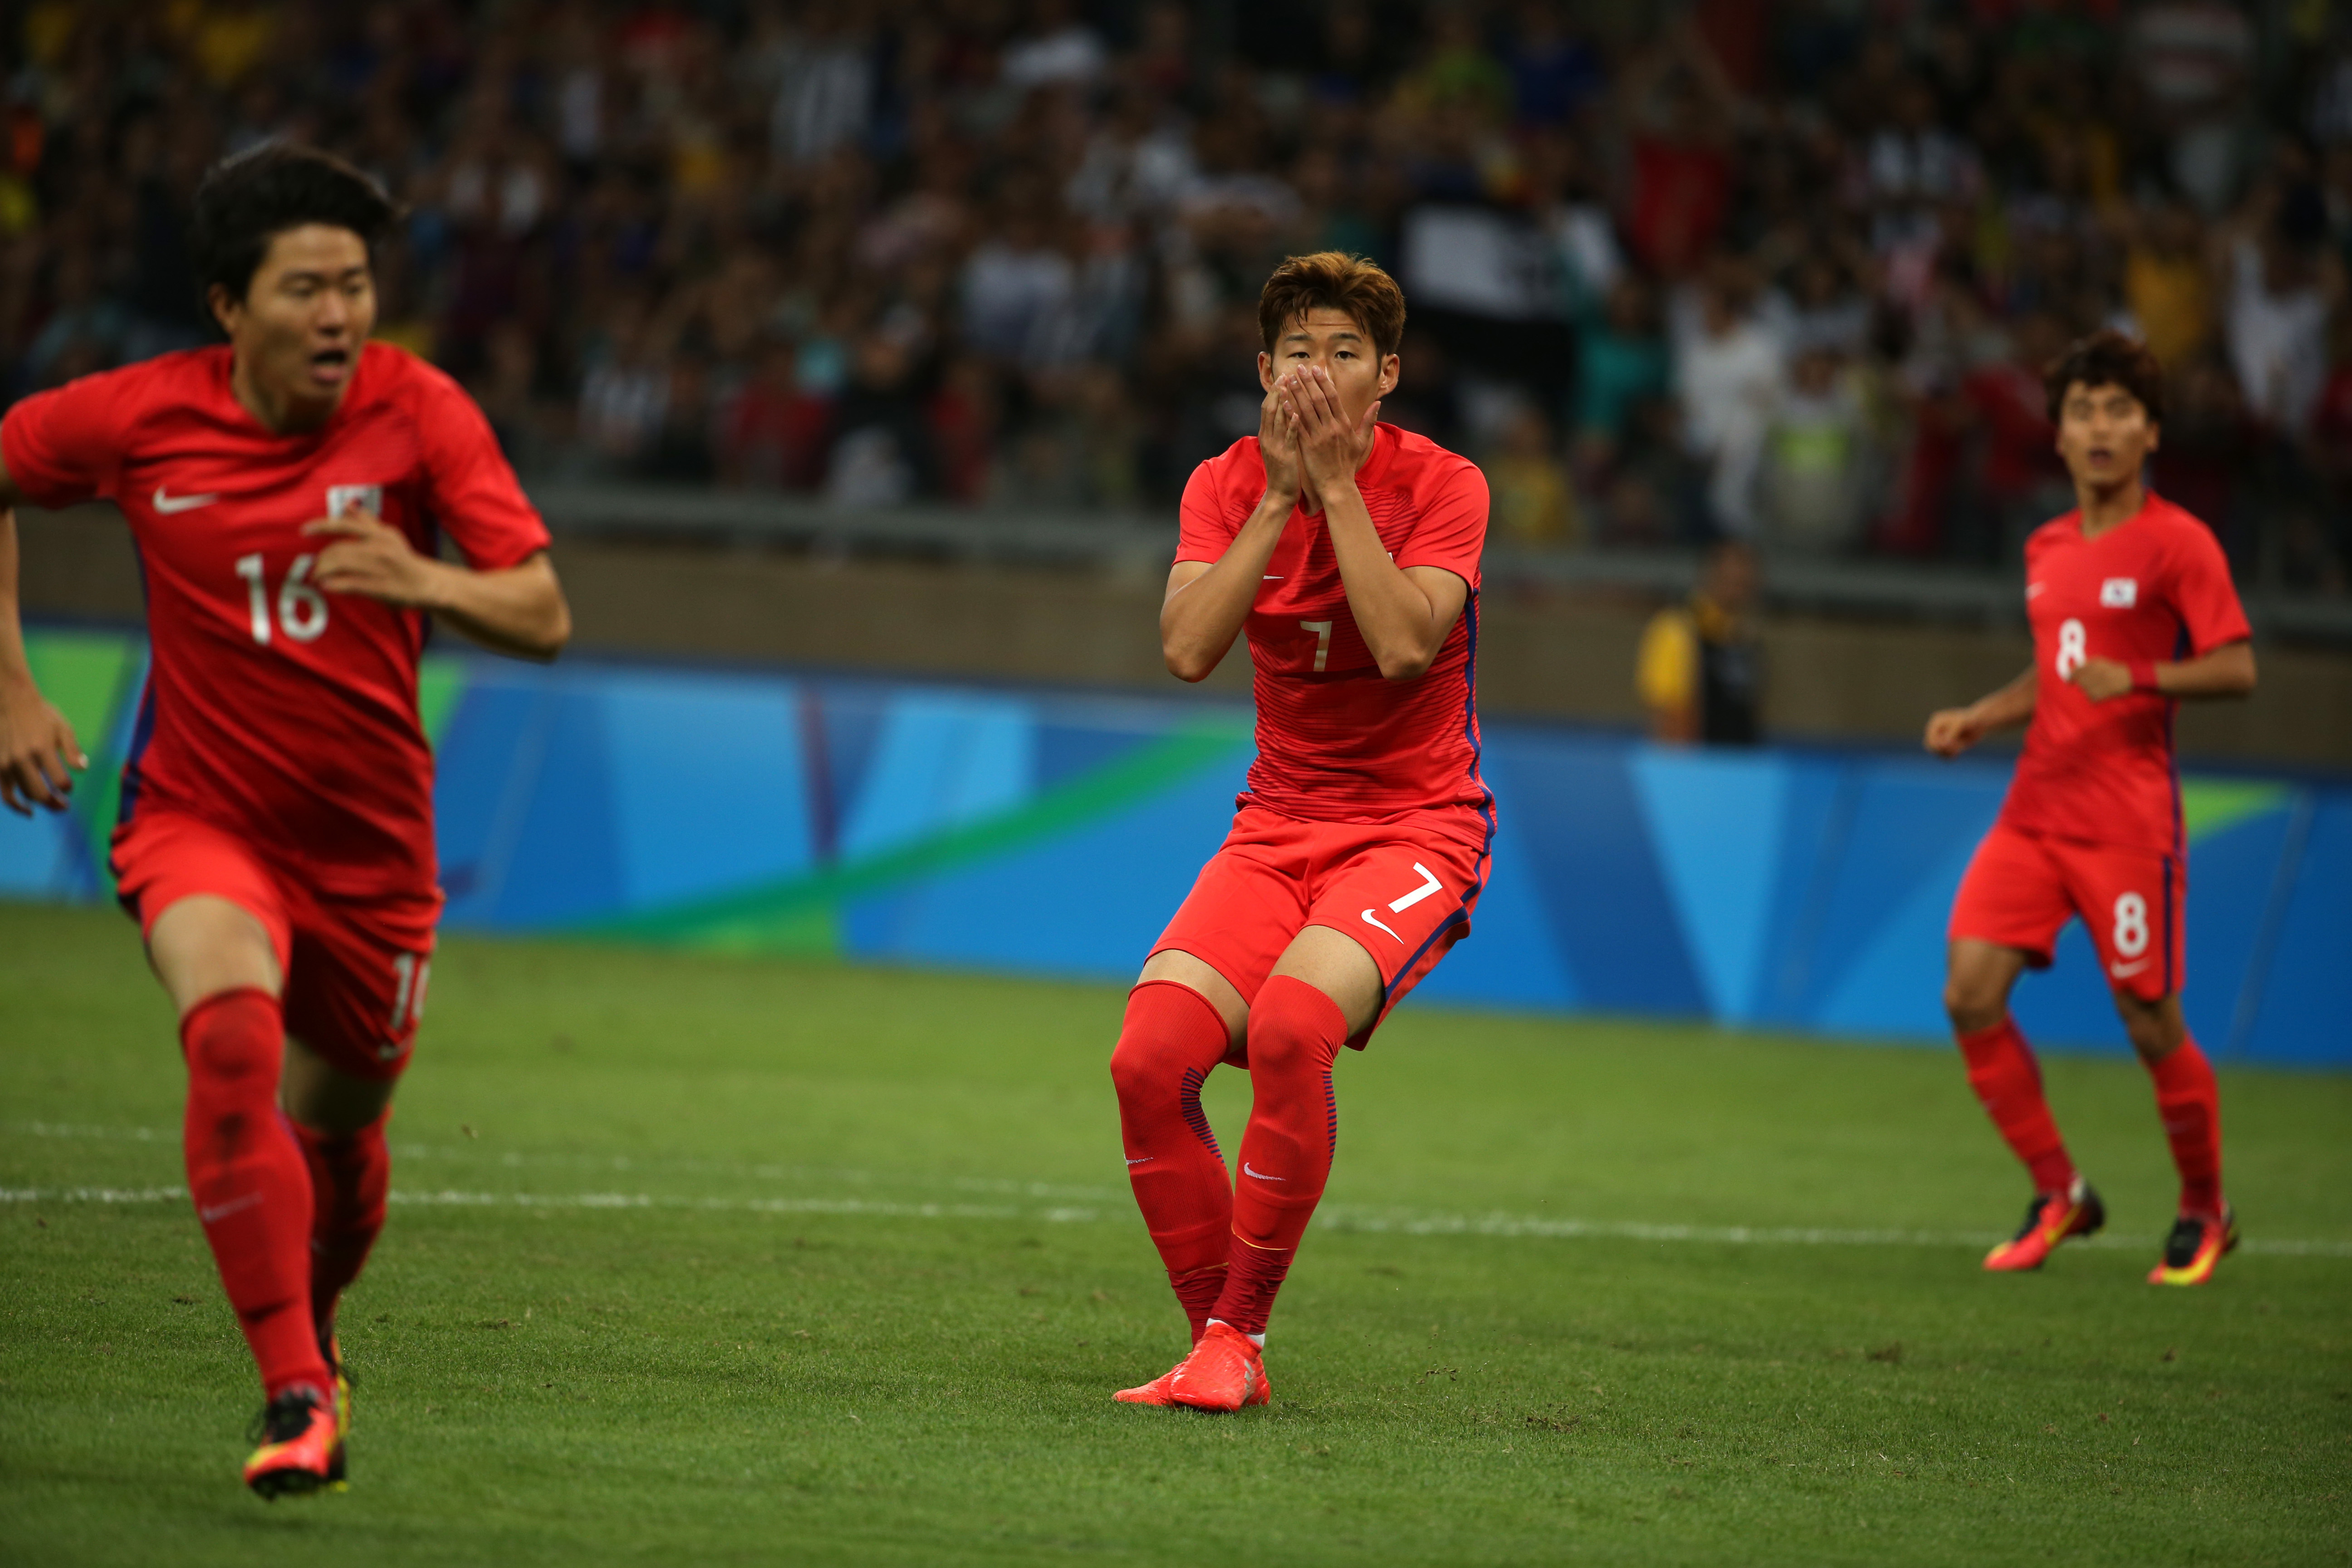 Korea's Son Heungmin, center, covers his mouth as he reacts to a missed shot during a quarter finals match of the men's Olympic football tournament between South Korea and Honduras at the Mineirao Stadium in Belo Horizonte, Brazil, Wednesday, Aug. 13, 201